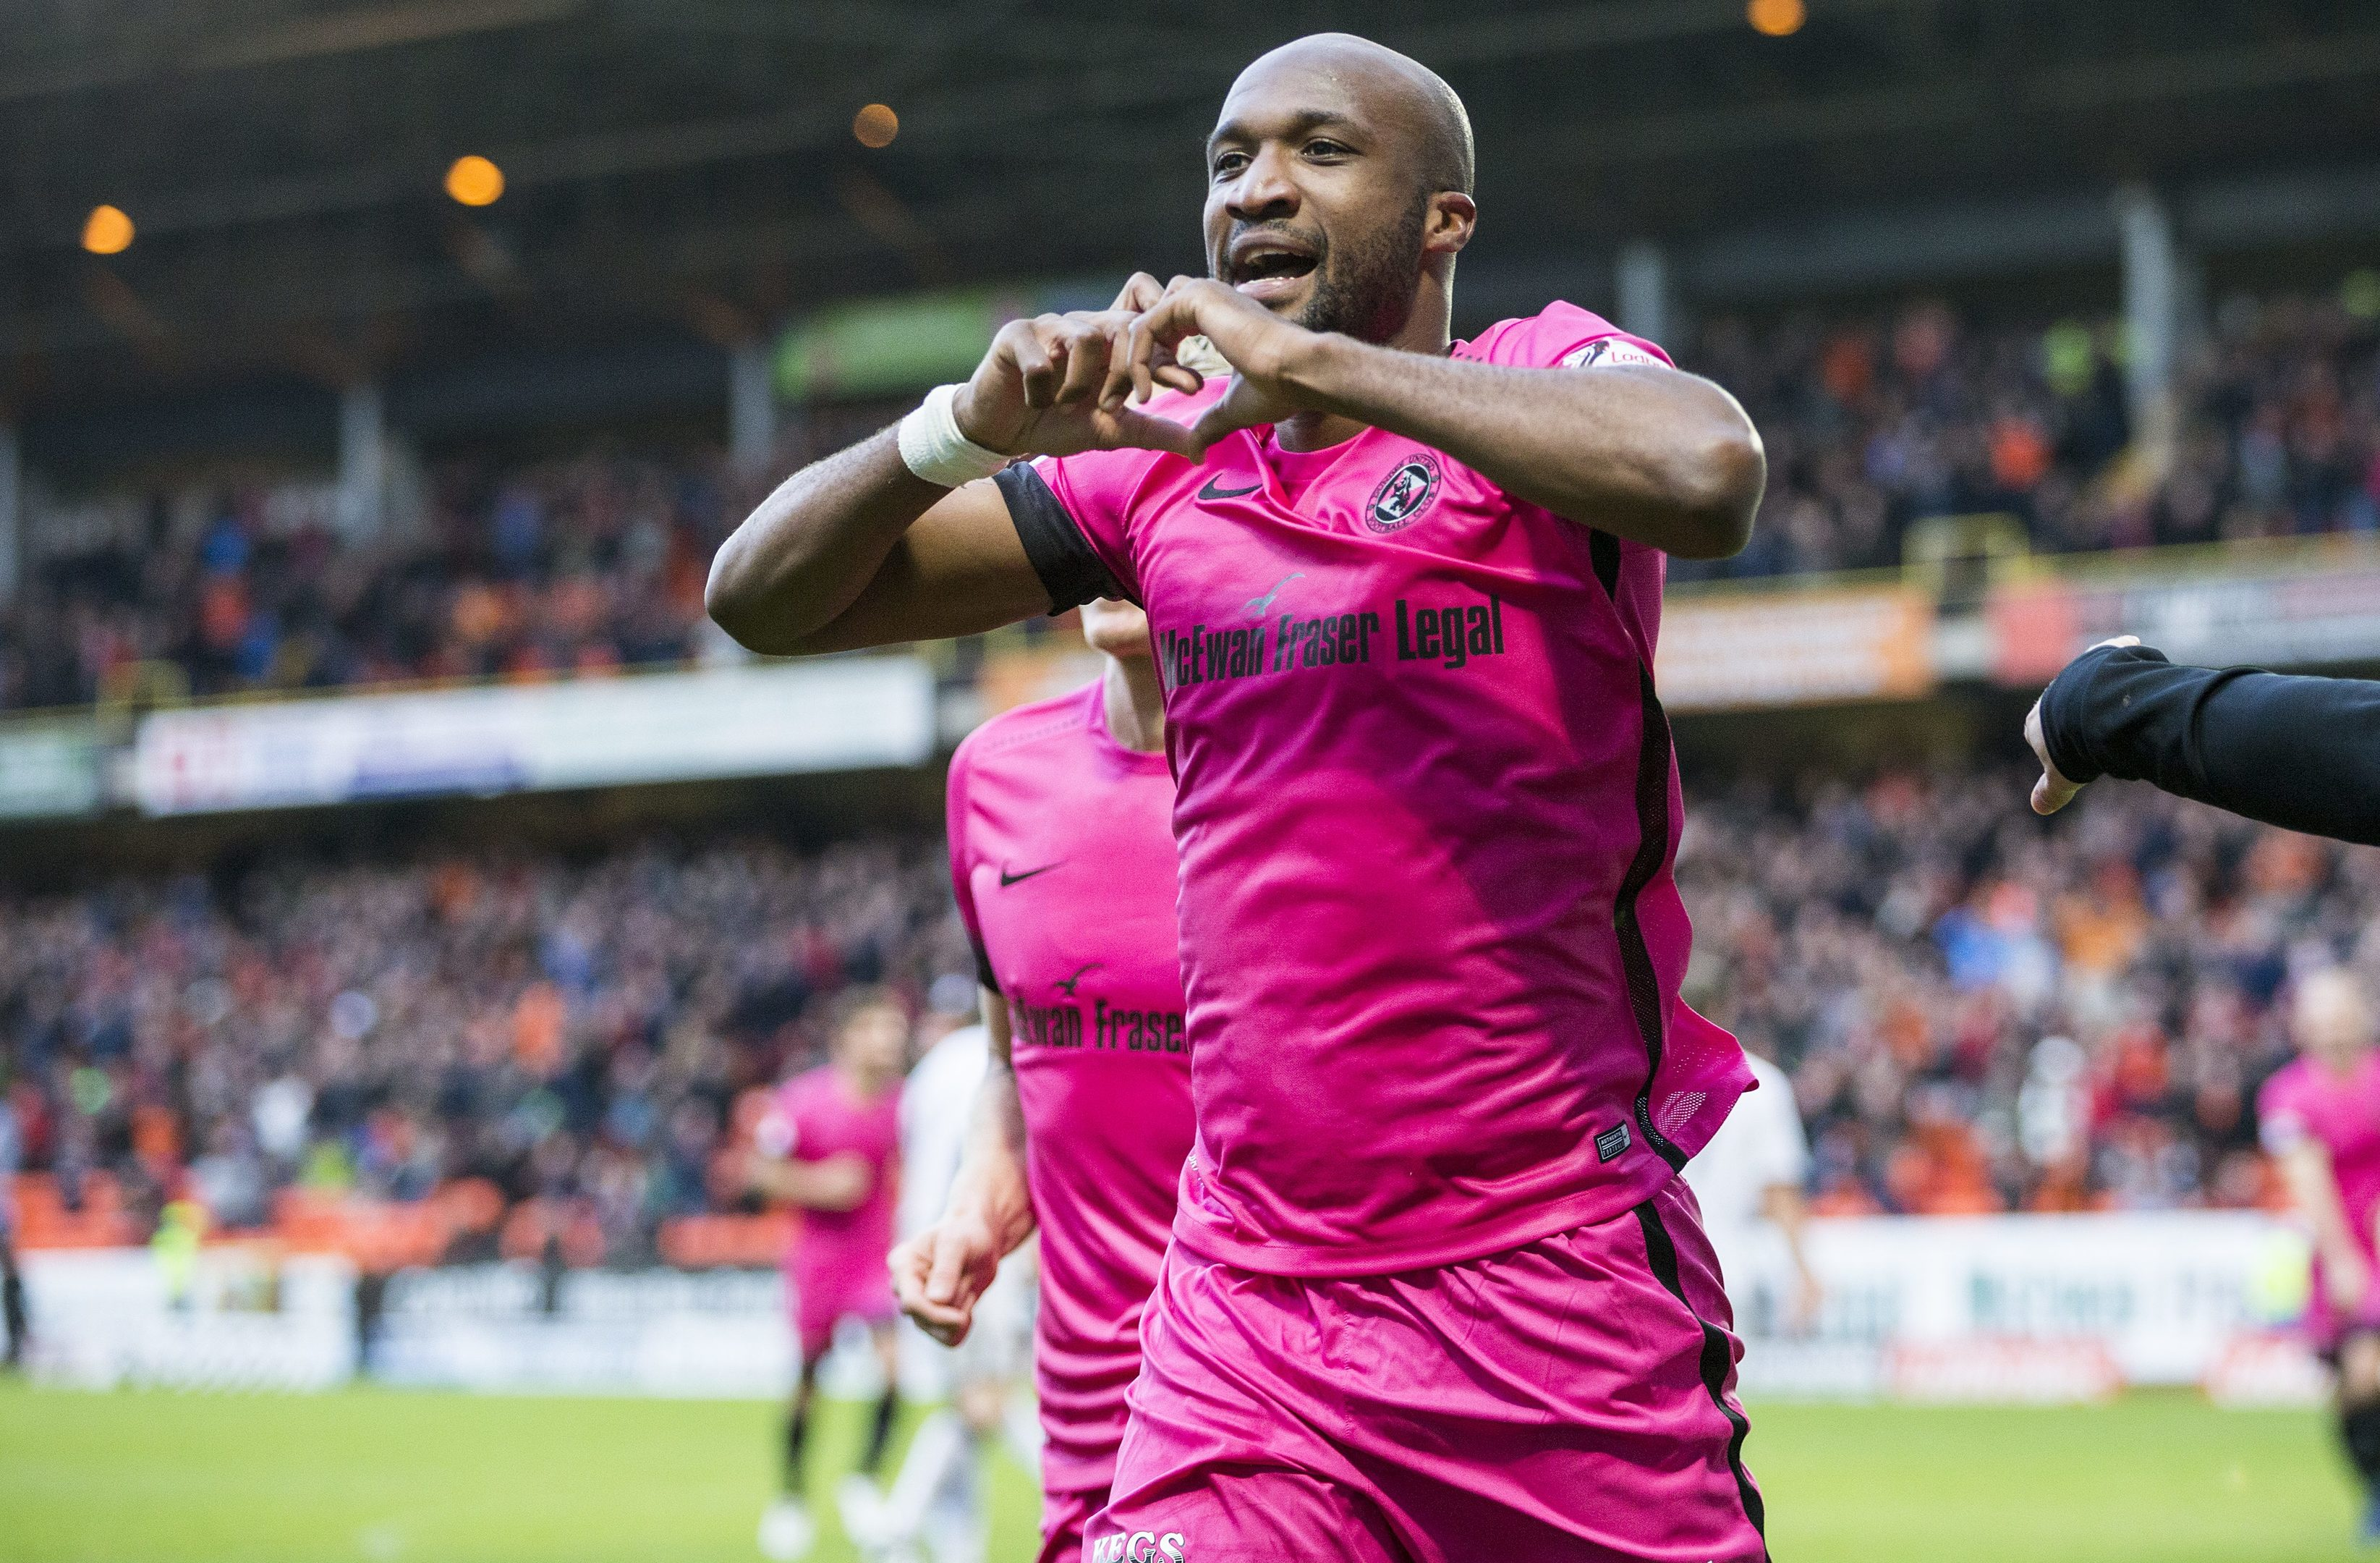 Dundee United defender William Edjenguele.